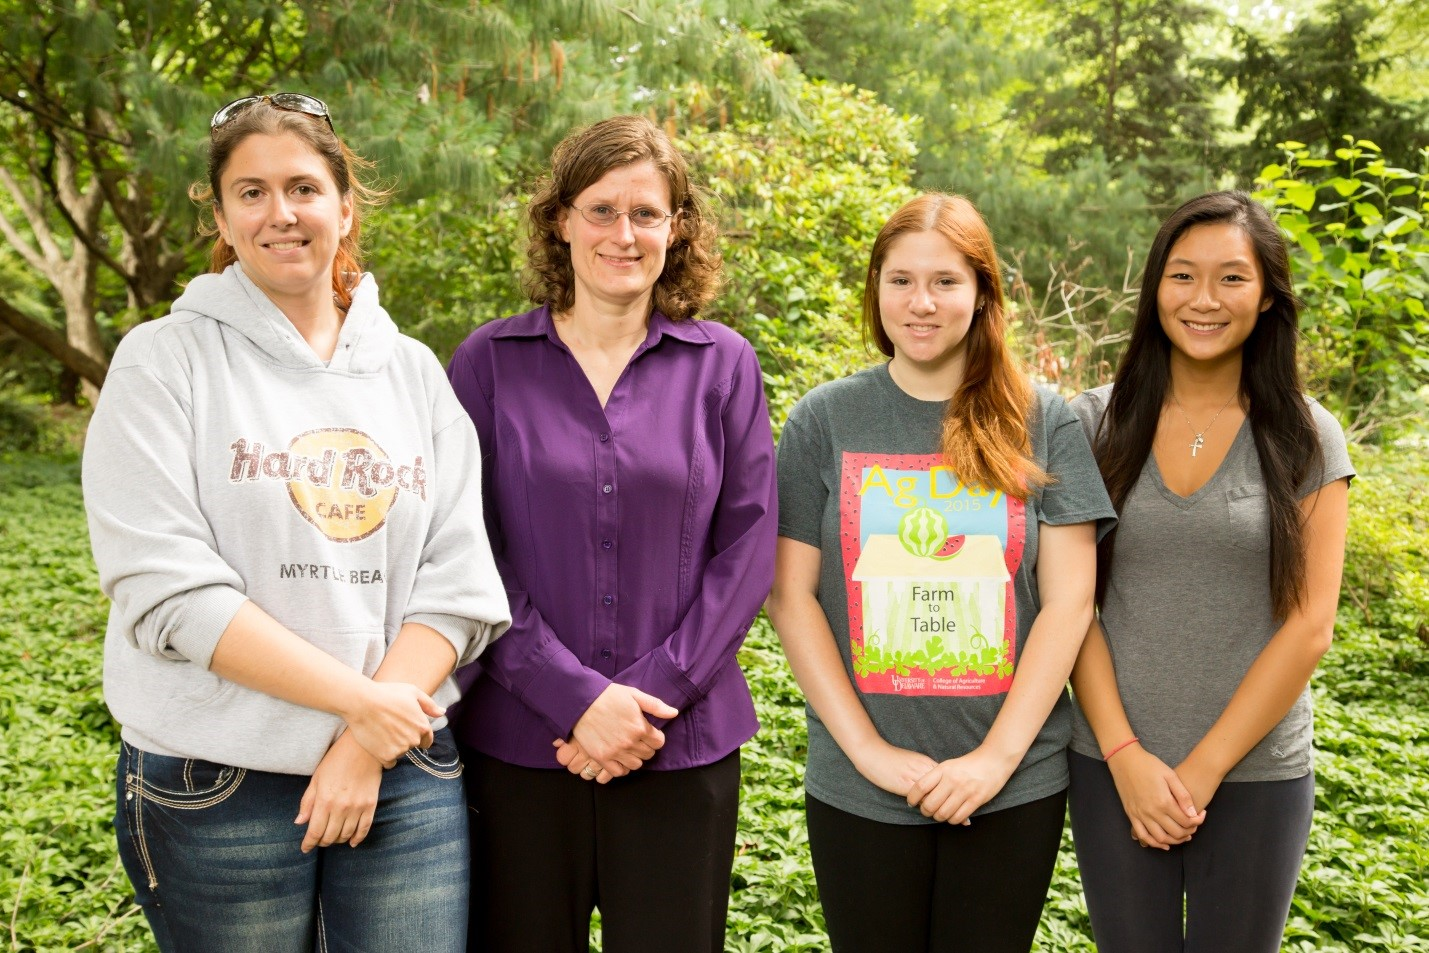 Left to right: Amanda Barnard, Tanya Gressley, Kayla Neidefer, and Annie Choi